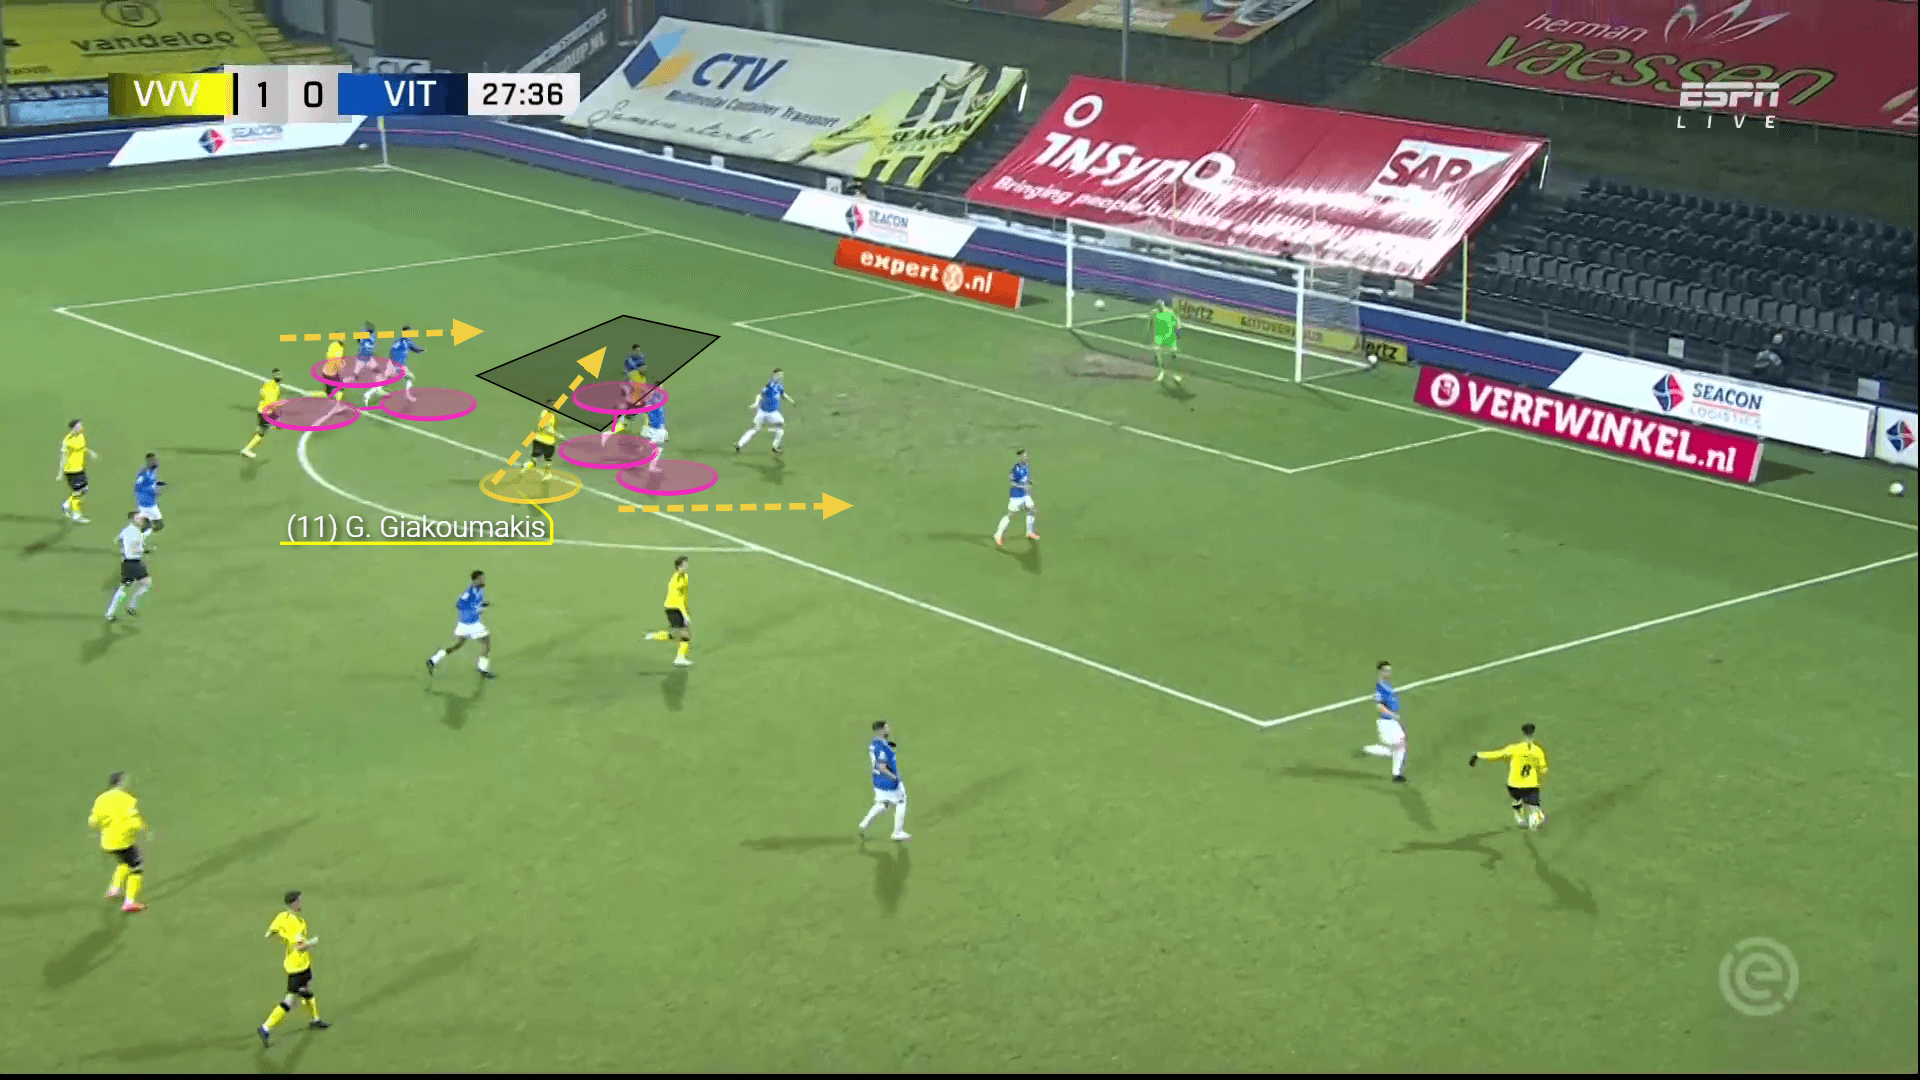 xG Giakoumakis: The bargain striker who is leading the Eredivisie Golden Boot - scout report tactical analysis tactics